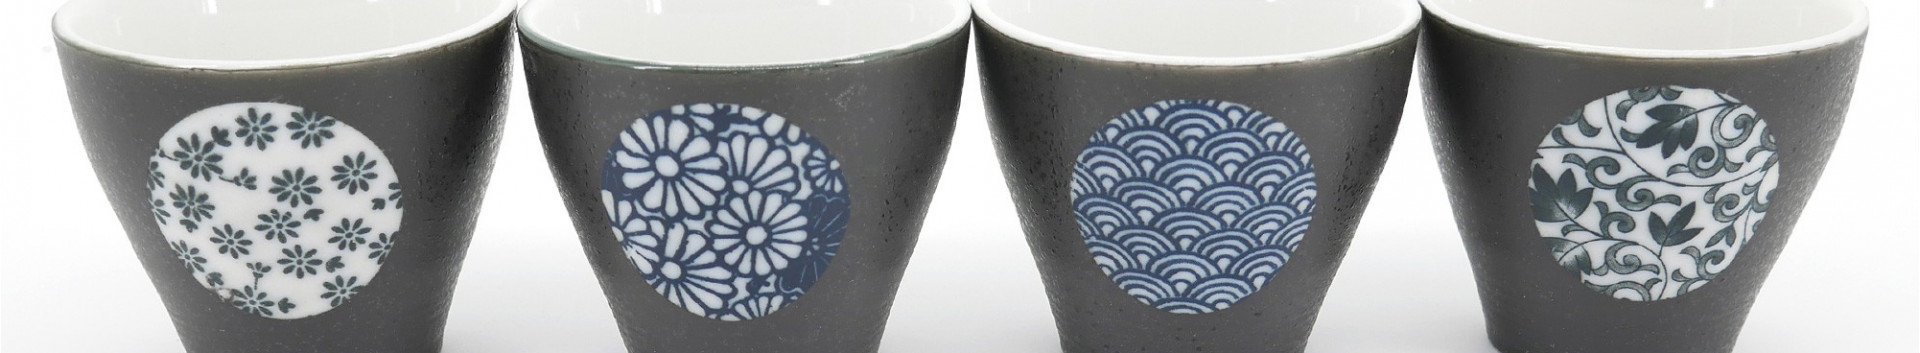 Set of Japanese cups made in Japan